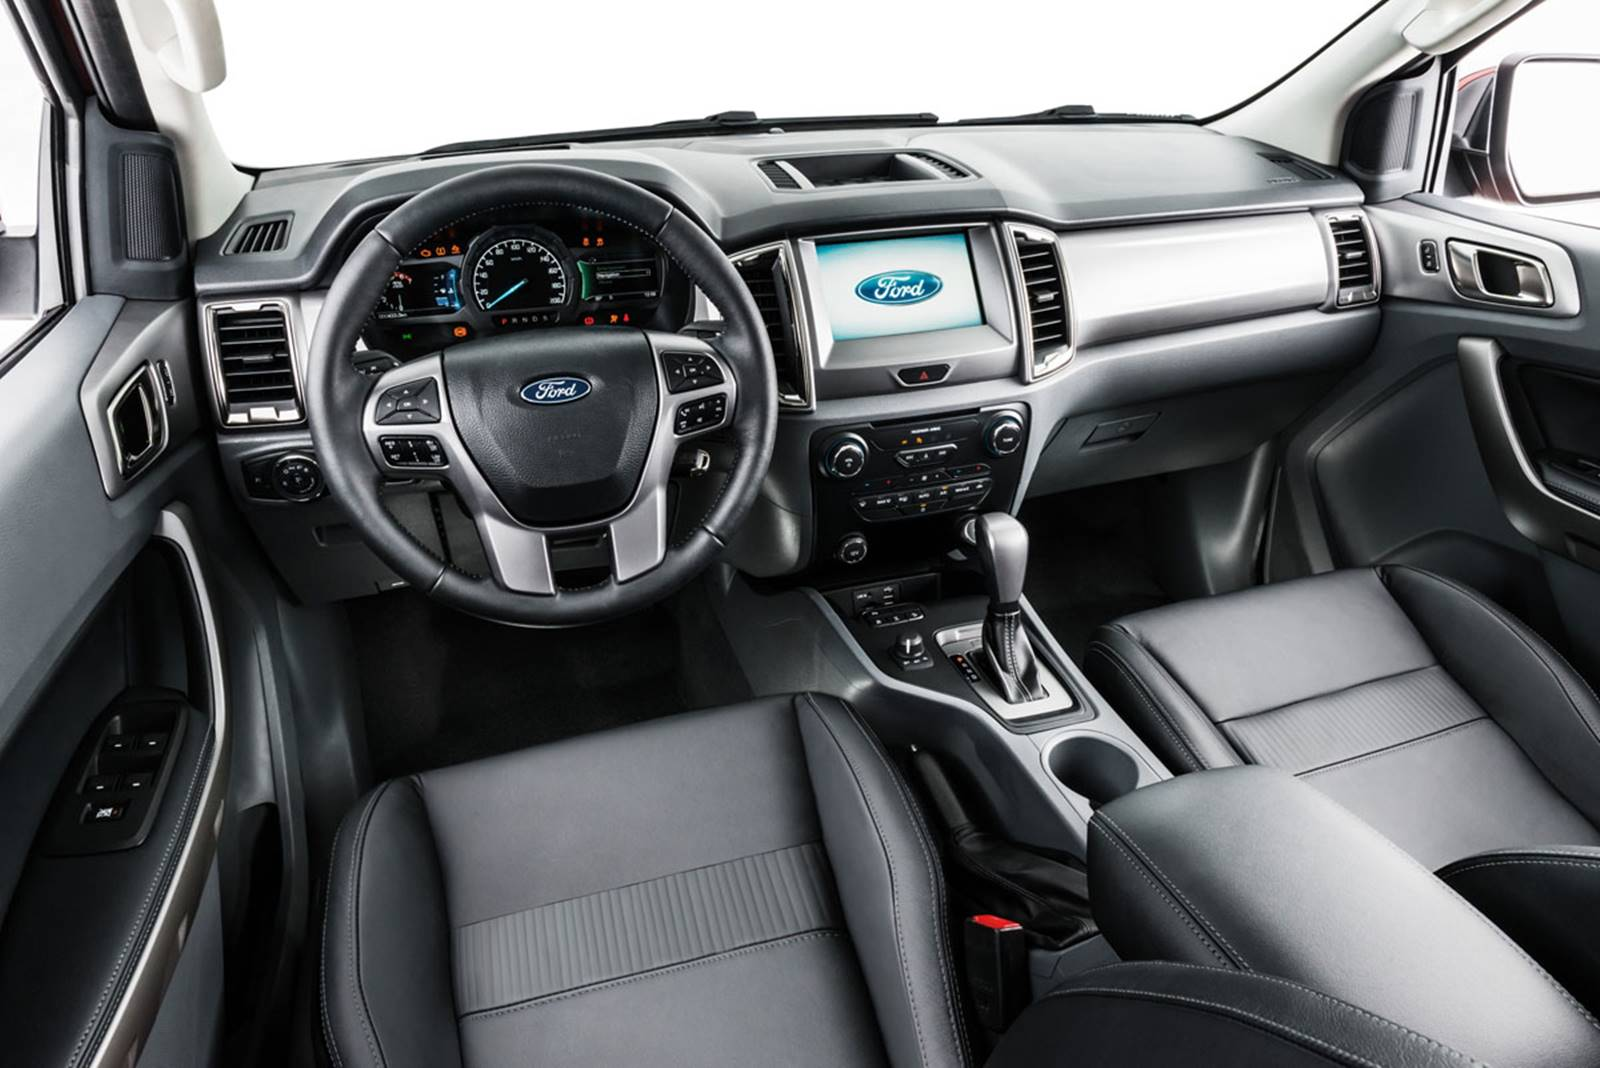 Nova Ford Ranger 2017 - interior